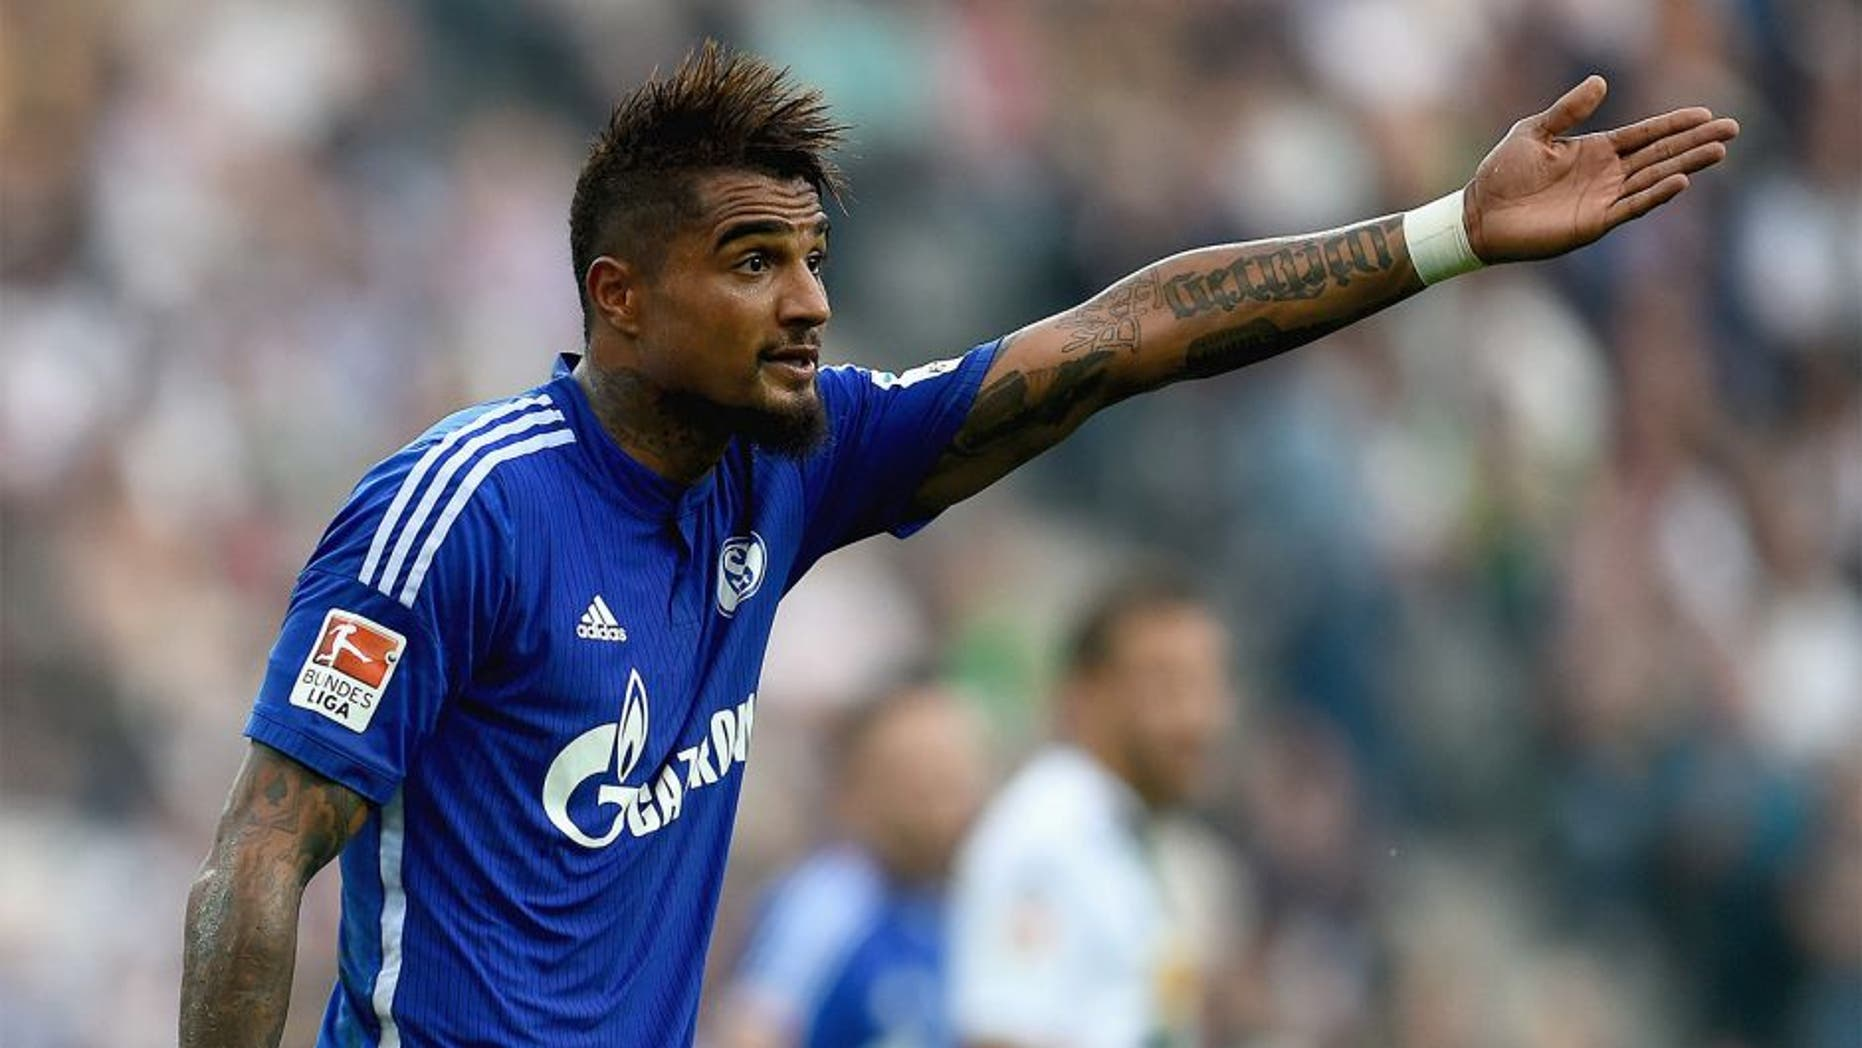 MOENCHENGLADBACH, GERMANY - SEPTEMBER 13: Kevin Prince-Boateng of FC Schalke 04 reacts during the Bundesliga match between Borussia Moenchengladbach and FC Schalke 04 at Borussia Park Stadium on September 13, 2014 in Moenchengladbach, Germany. (Photo by Dennis Grombkowski/Bongarts/Getty Images)